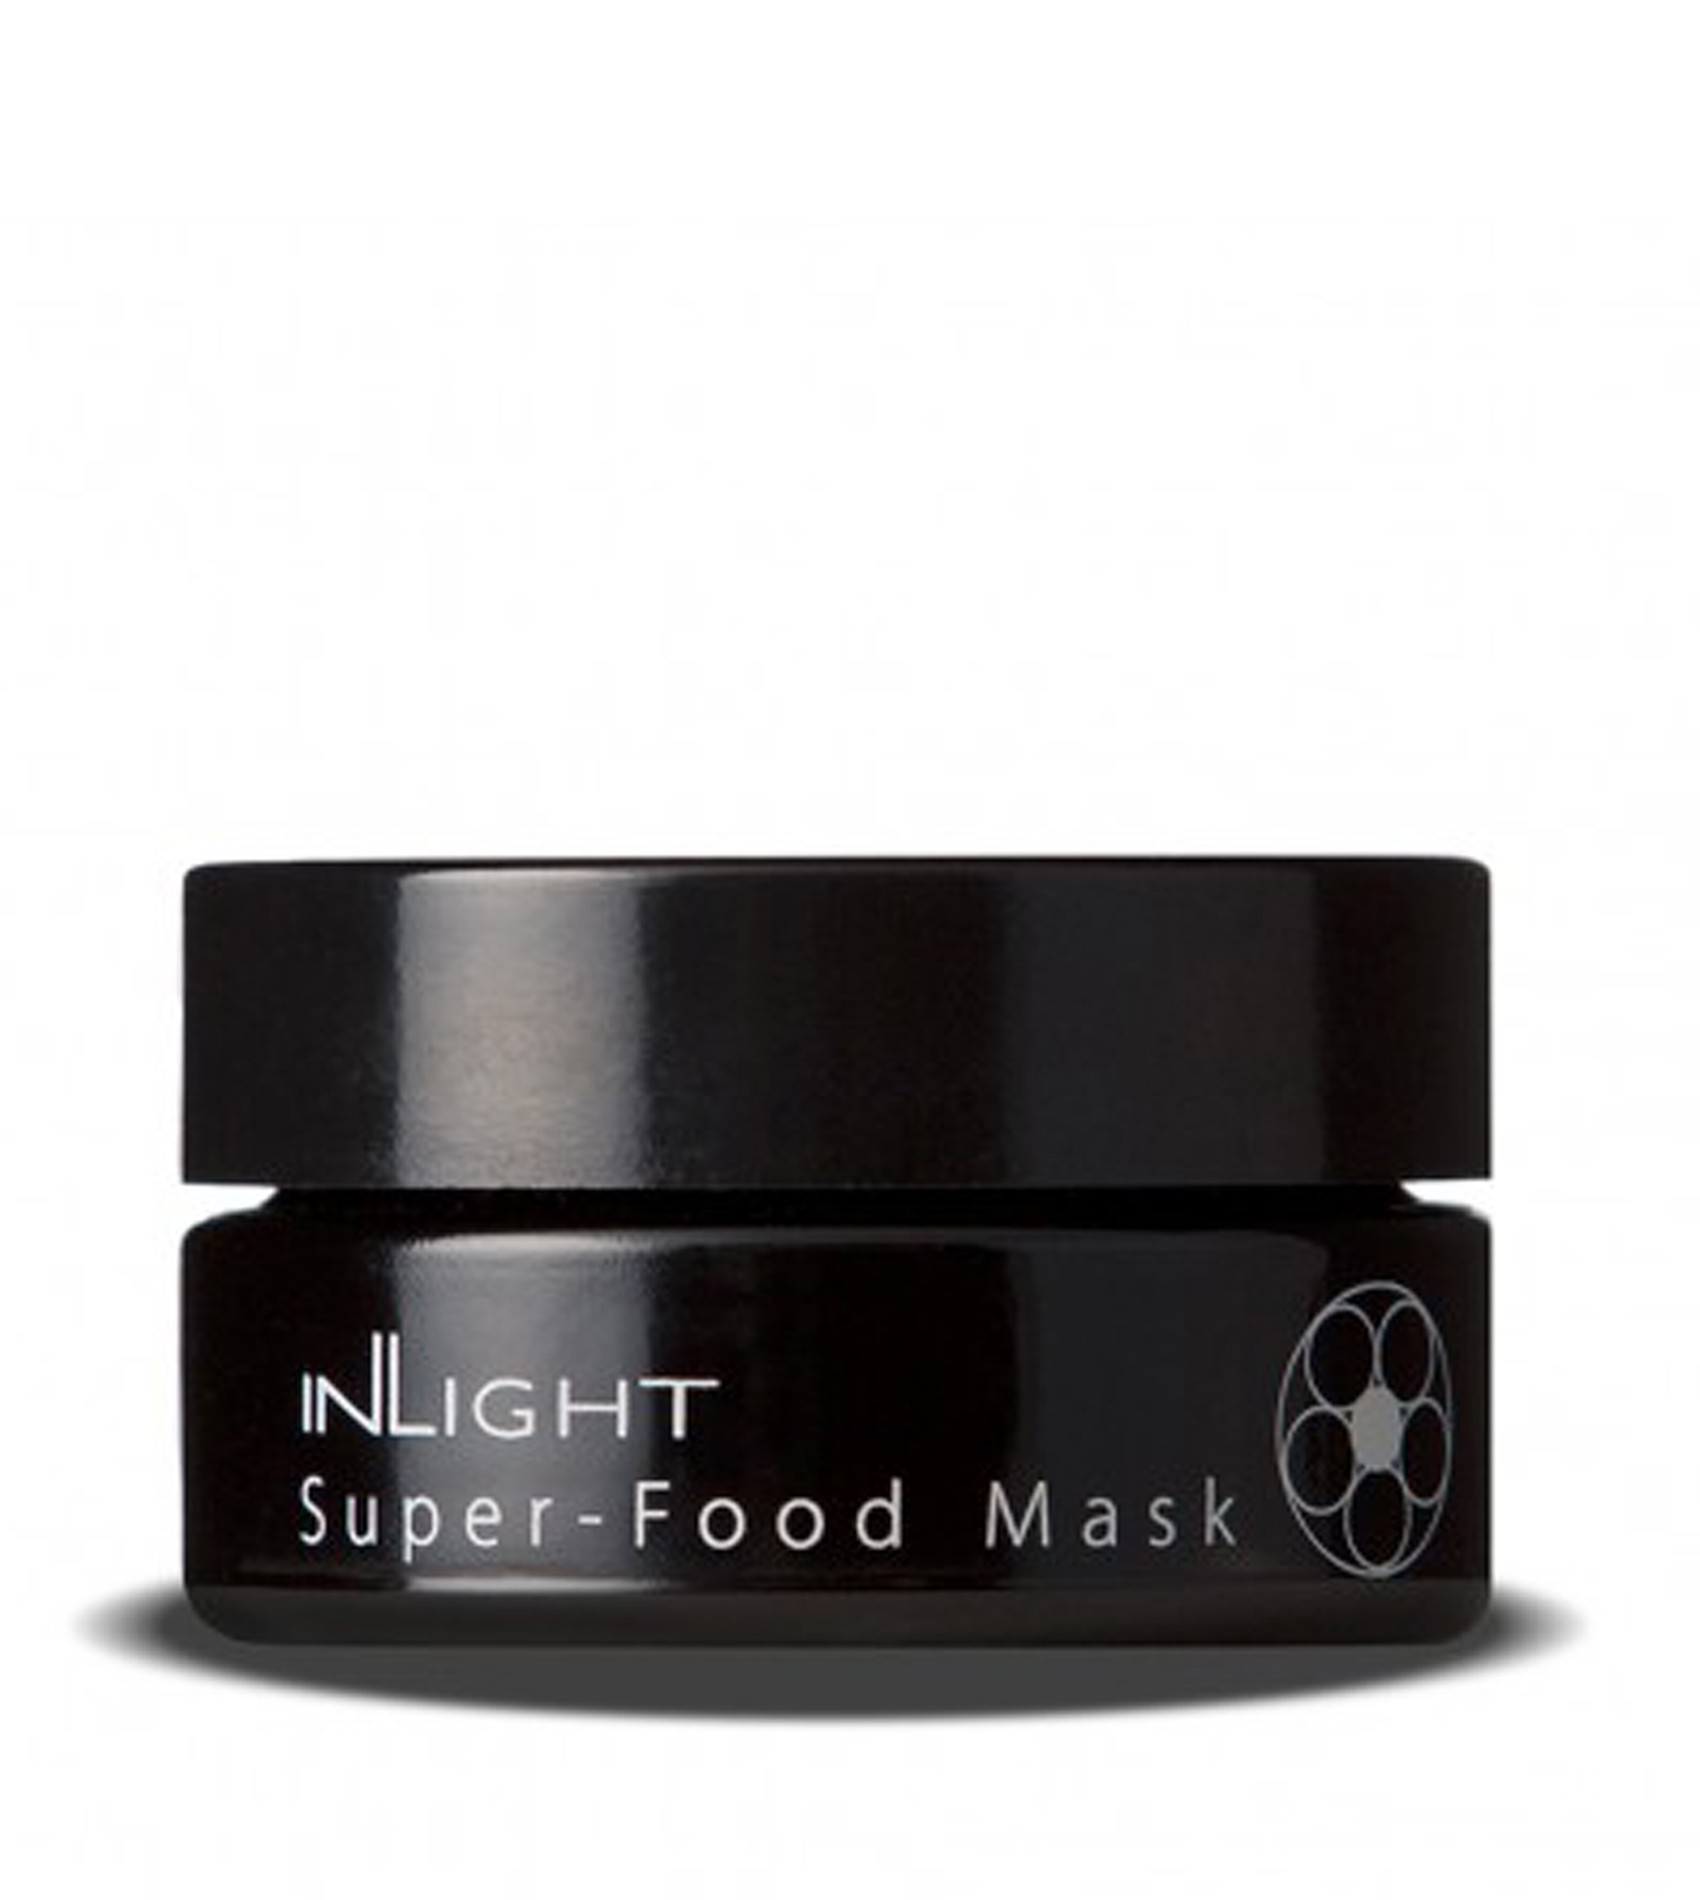 Inlight Superfood Face Mask